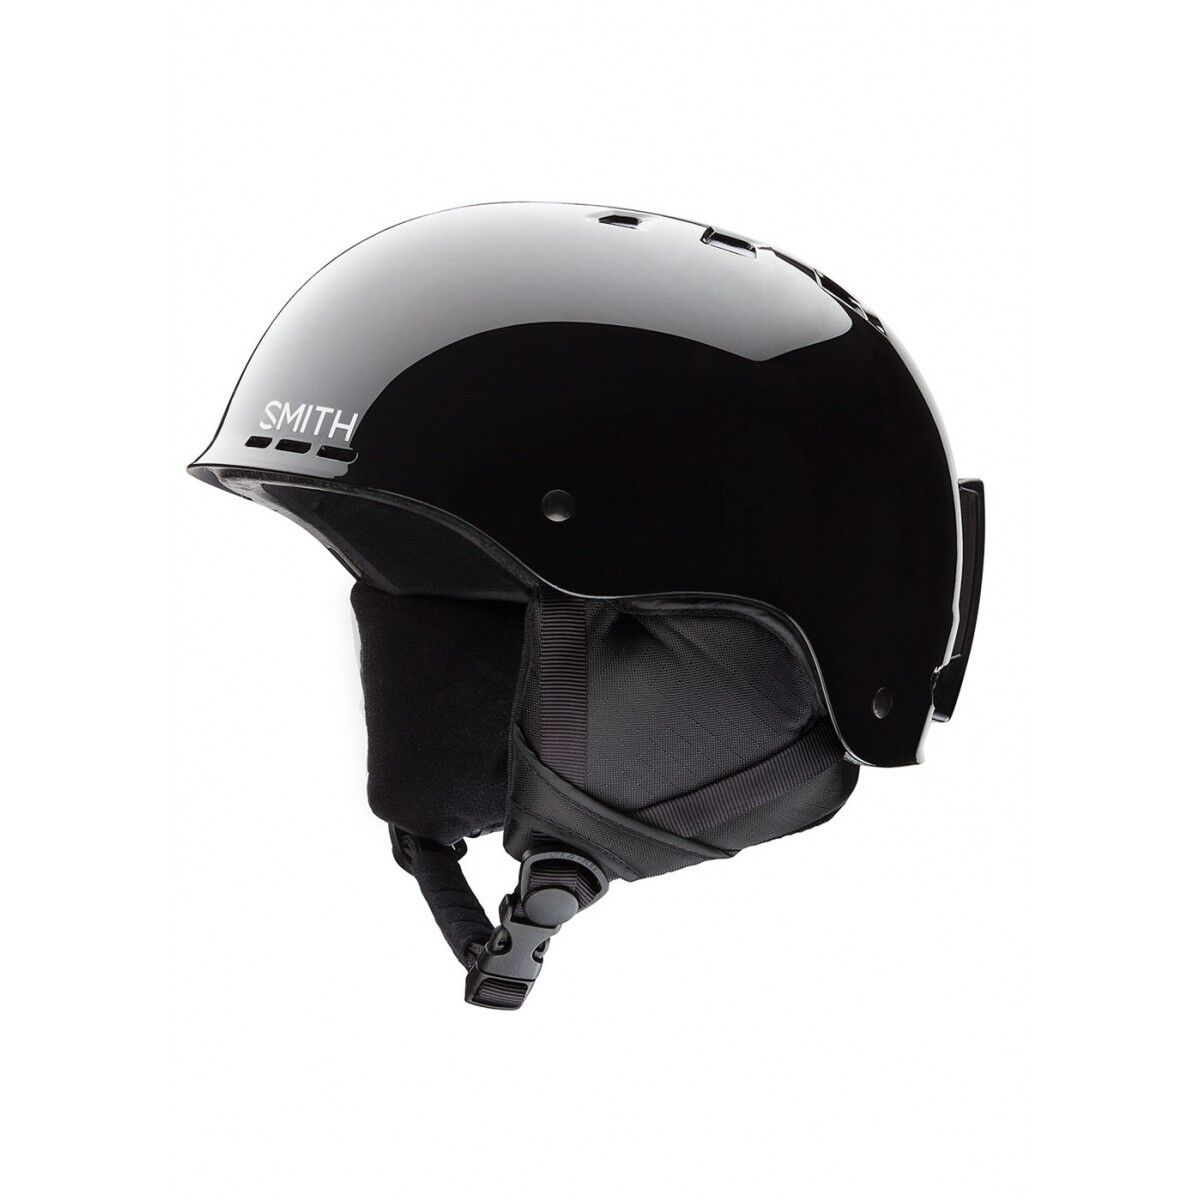 SMITH HOLT JR KIDS HELMET SIZE SMALL  NEW WITH TAGS  factory outlet online discount sale